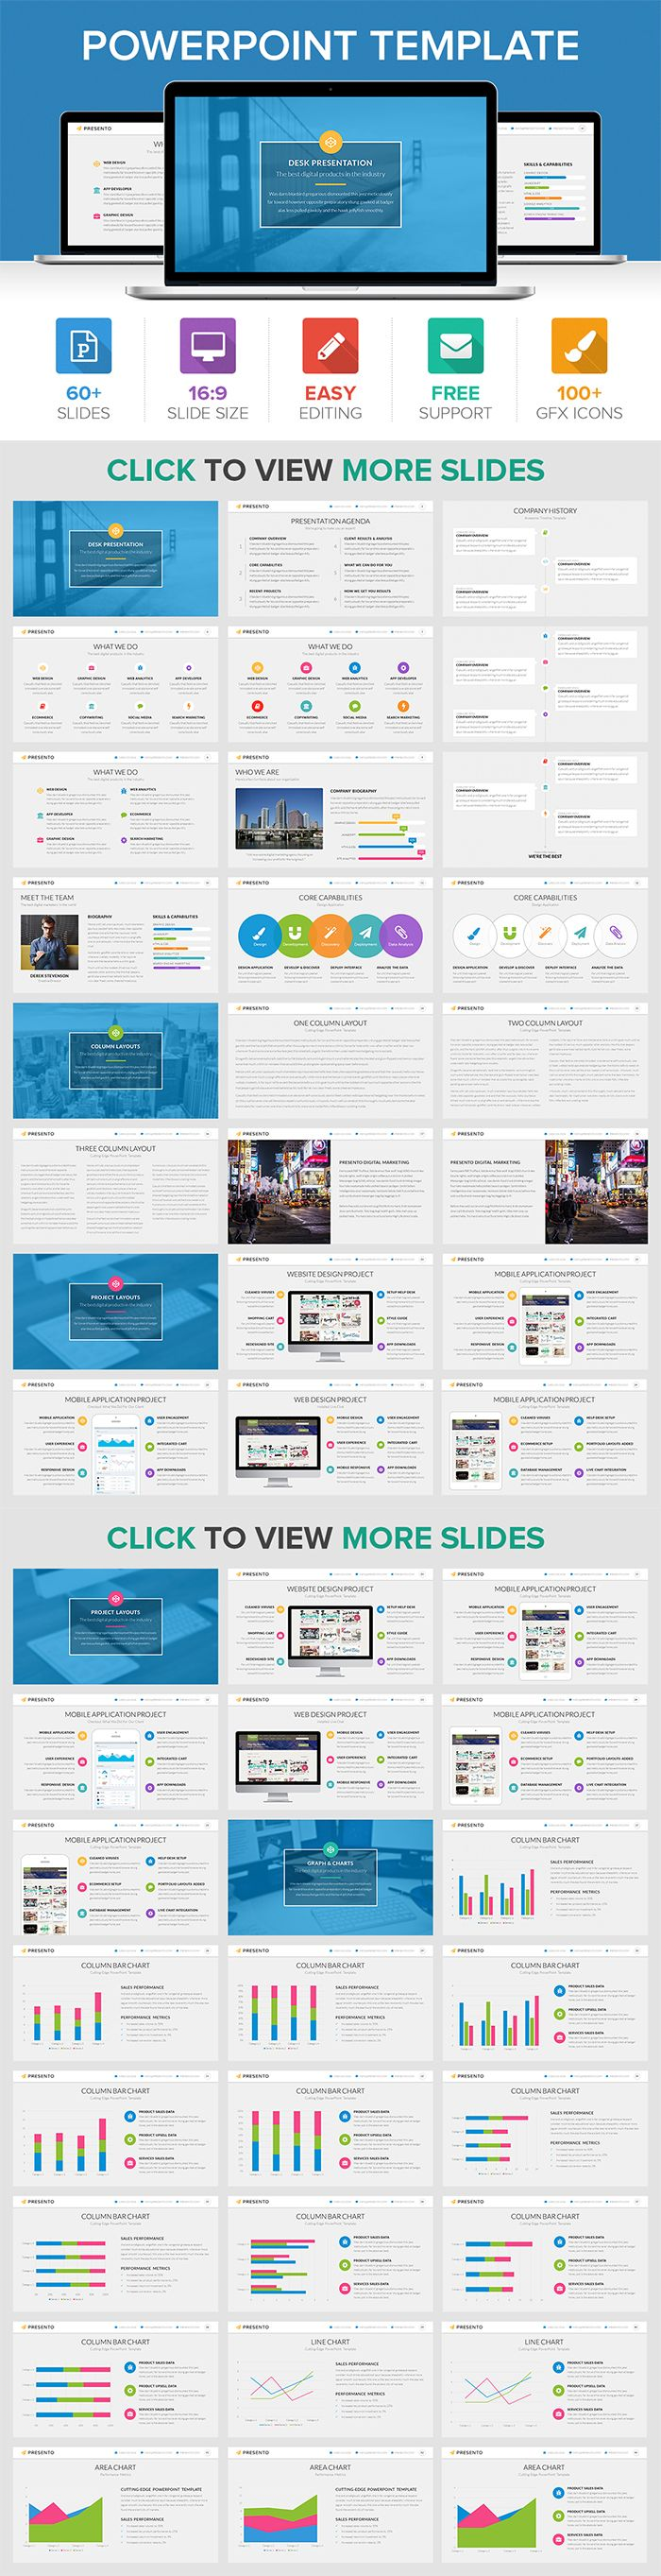 Get 5 Best PowerPoint Templates for Only $15 | InkyDeals